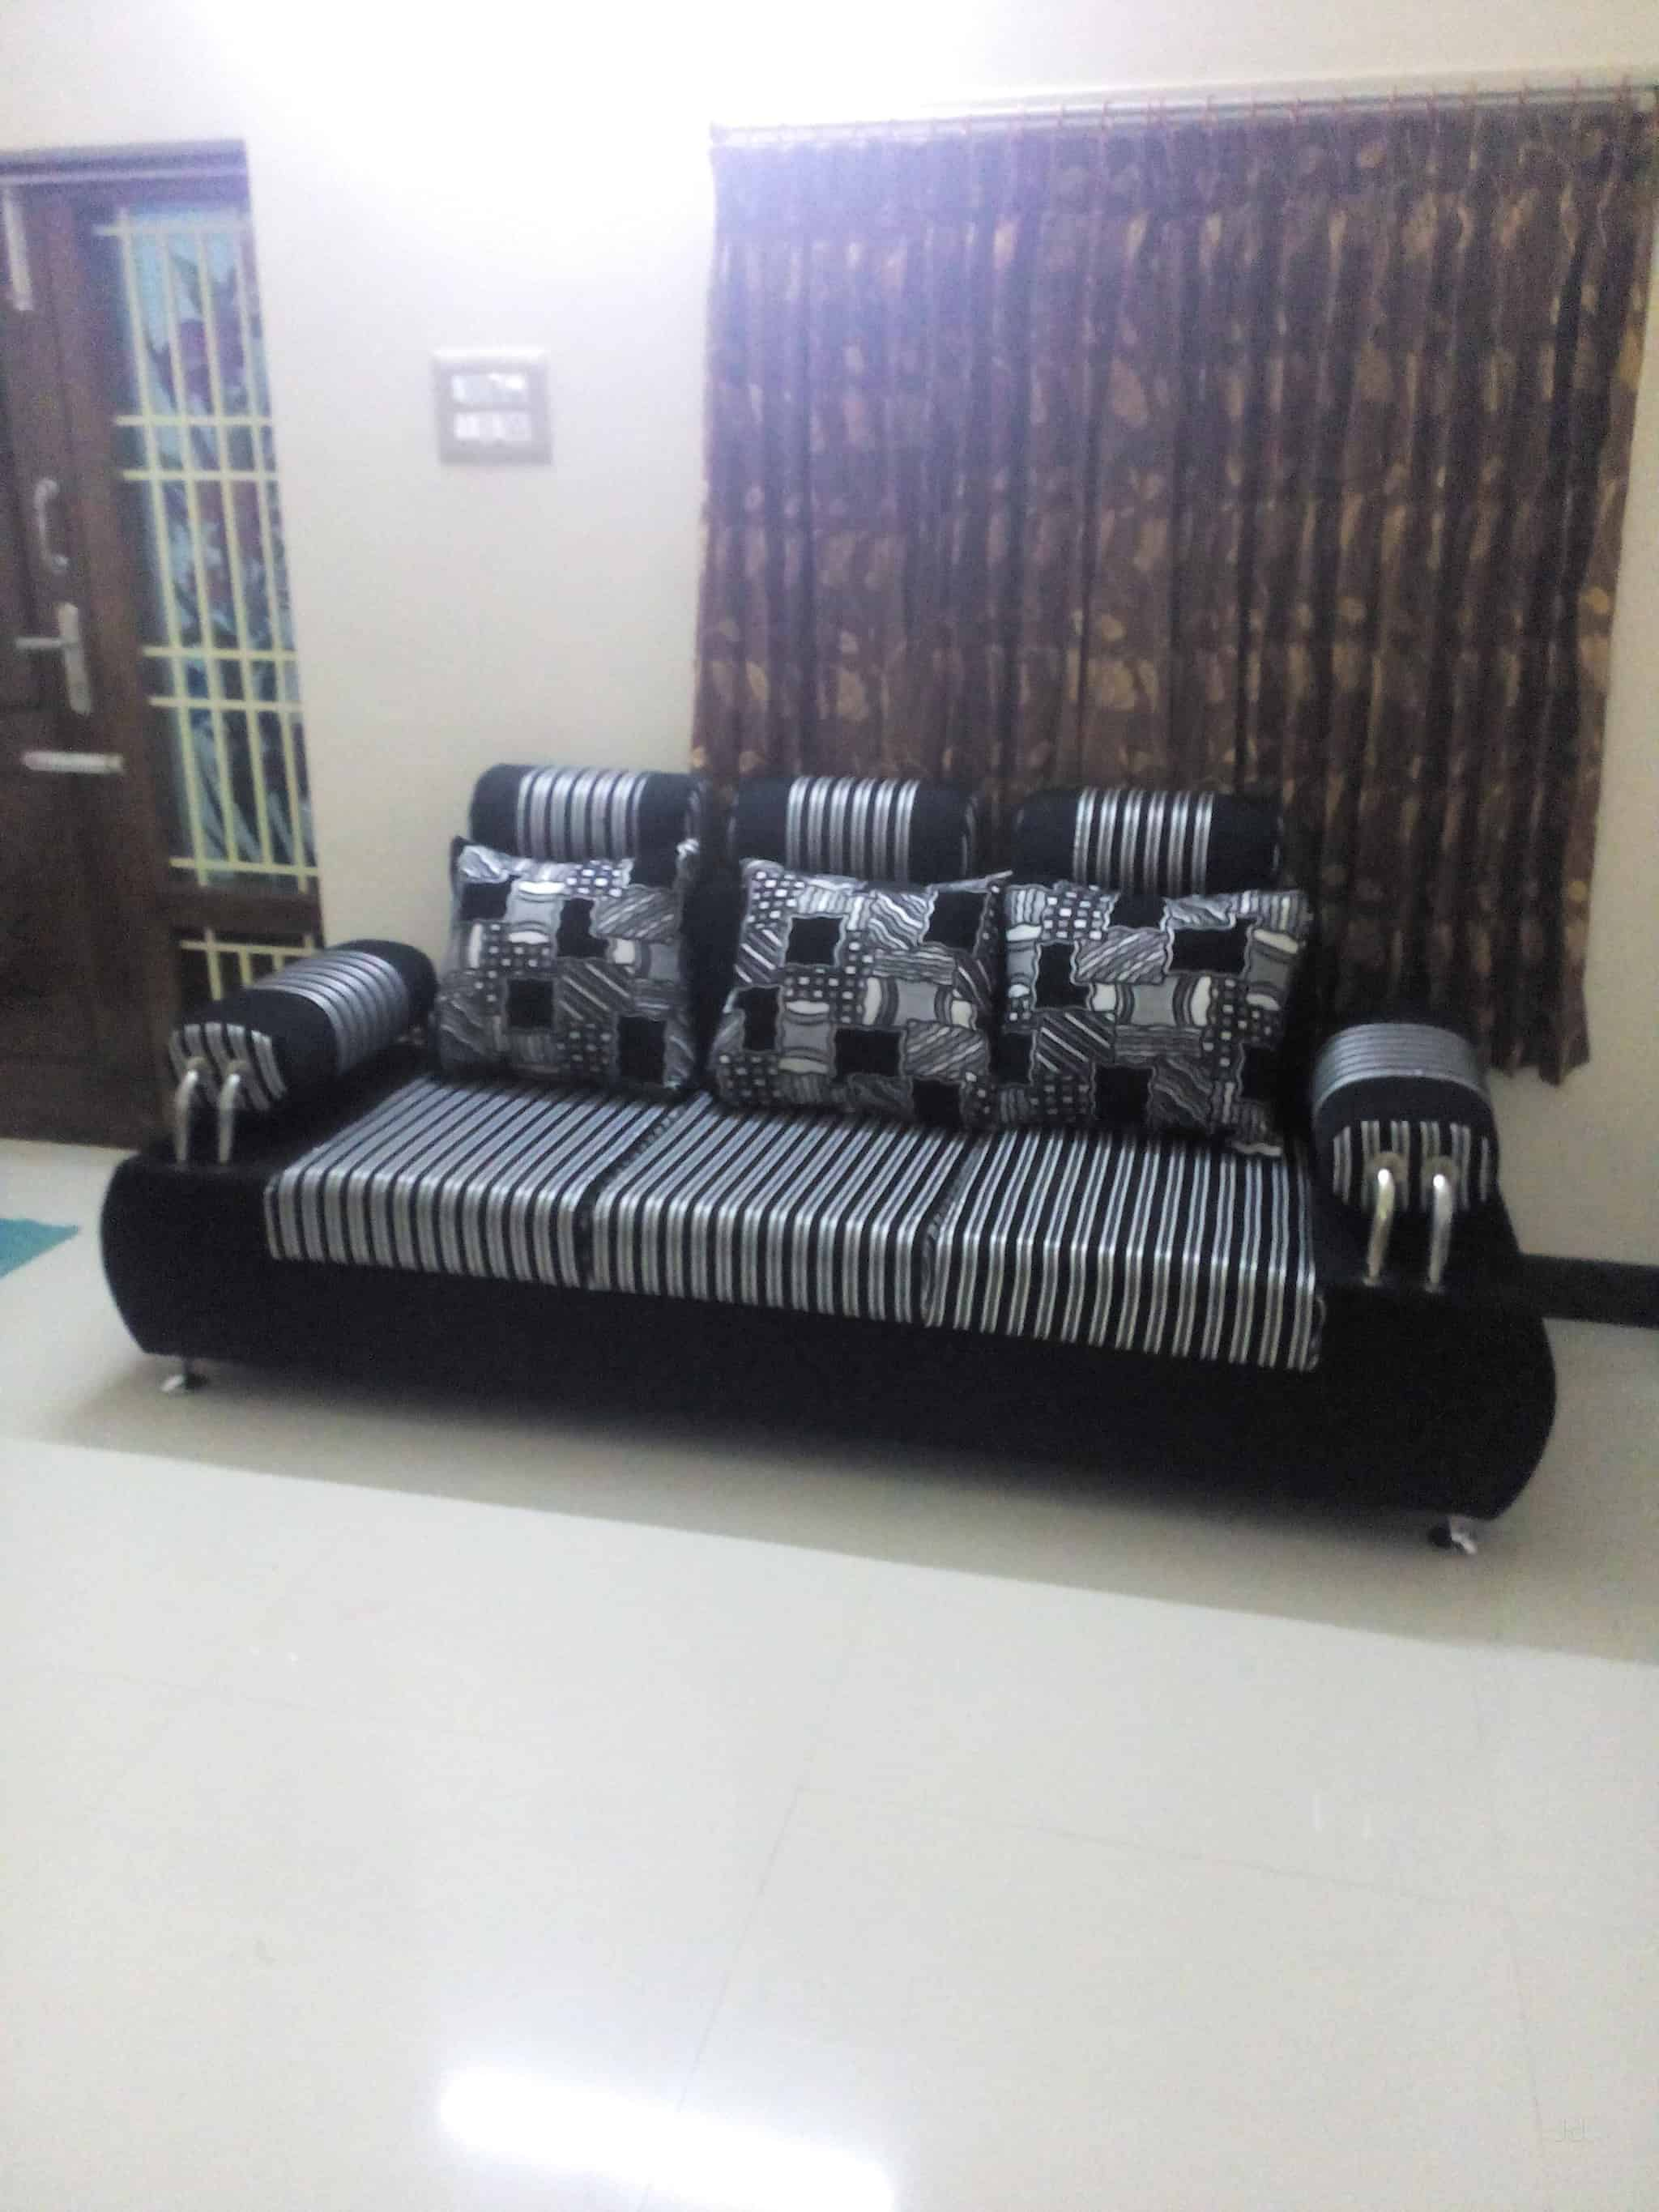 New Nippon Furniture Furniture Dealers in Namakkal Justdial